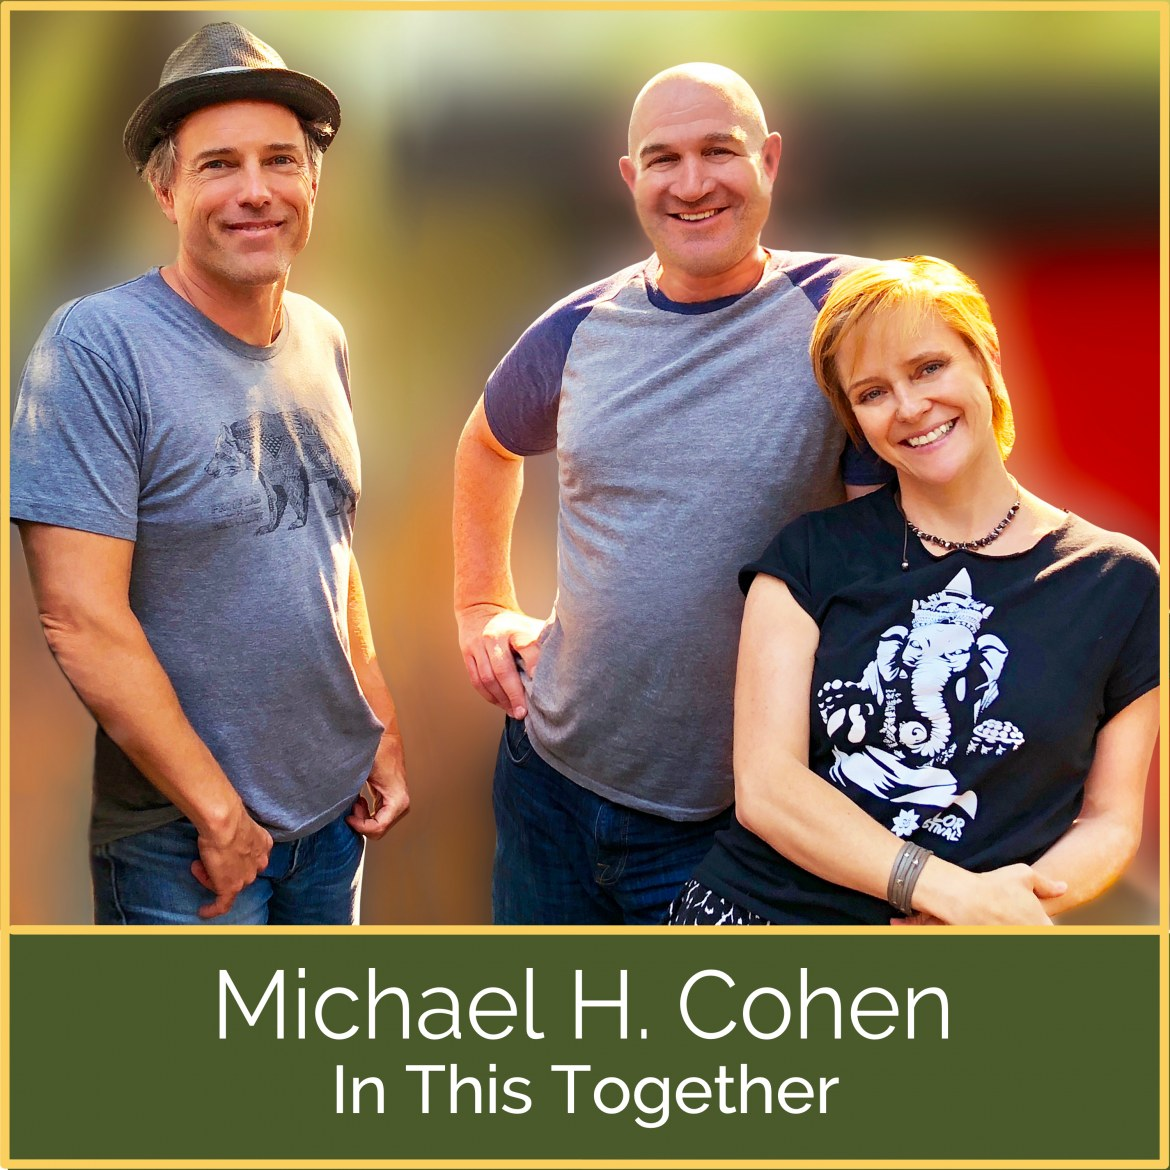 In this Together singles album cover Green